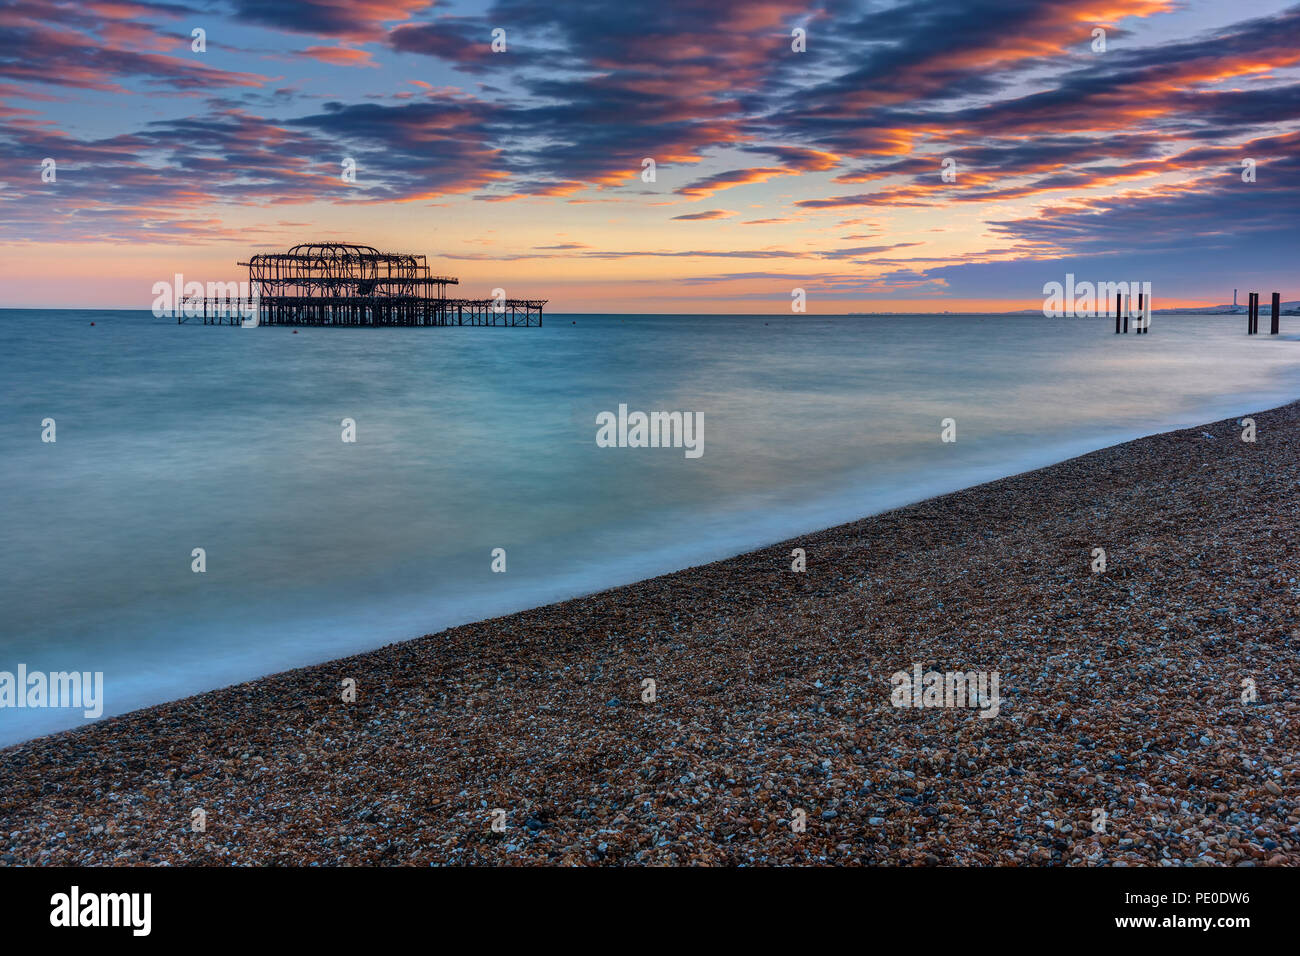 The old destroyed West Pier in Brighton, UK, after sunset - Stock Image